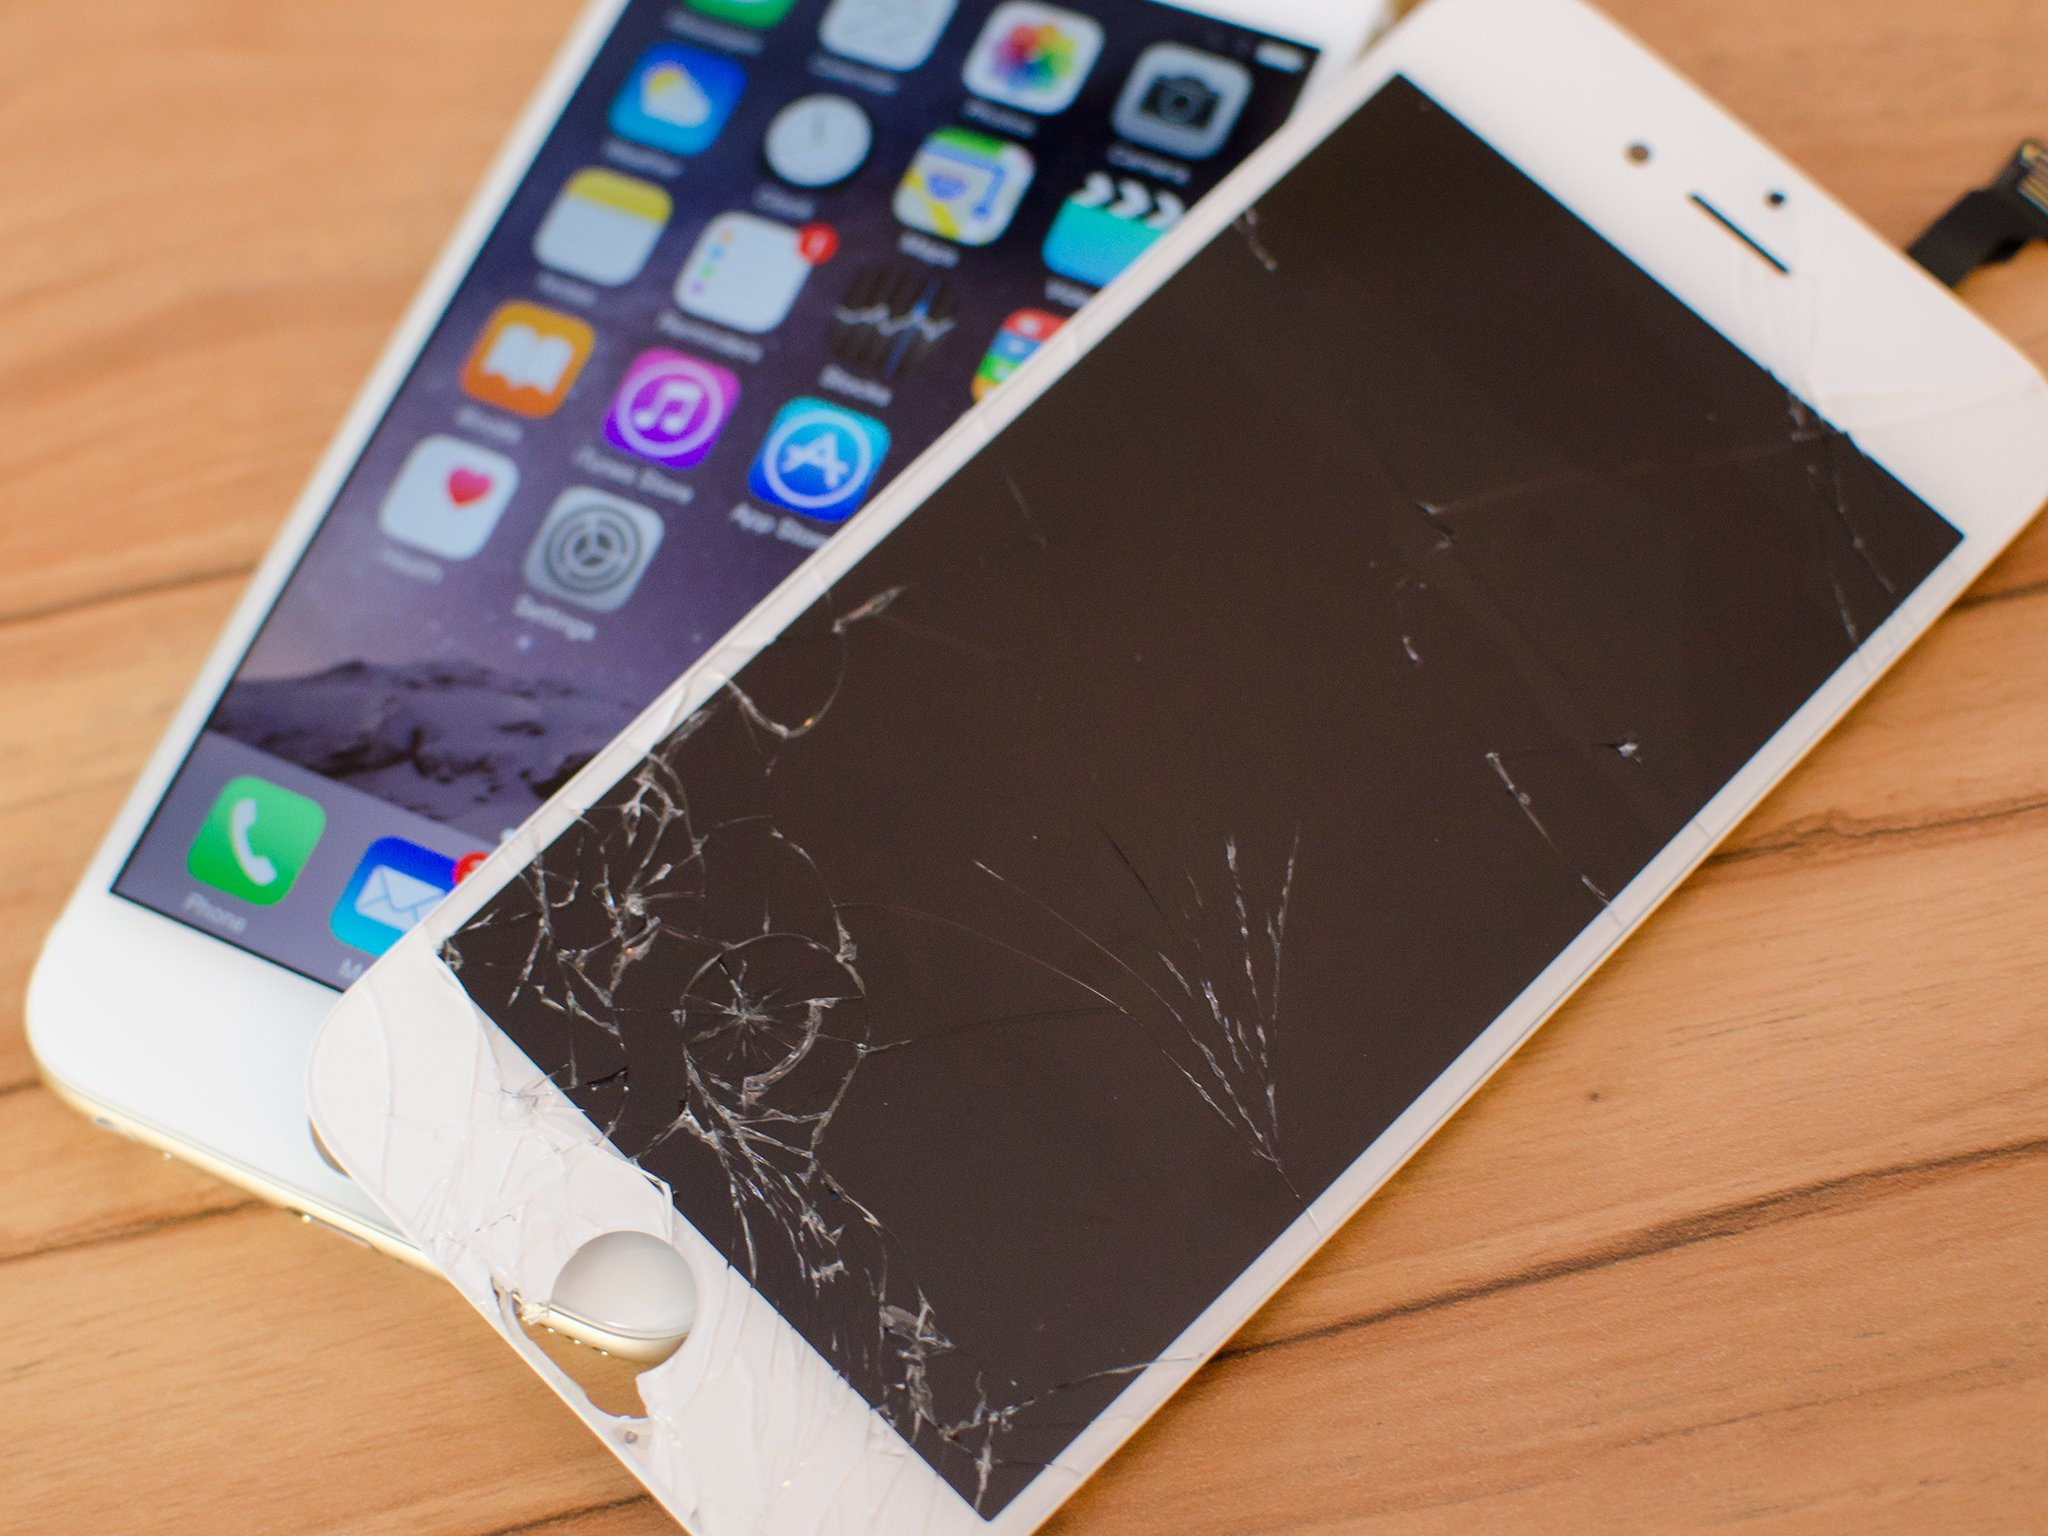 Shattered Iphone X Wallpaper How To Fix A Broken Iphone 6 Screen In 10 Minutes Imore